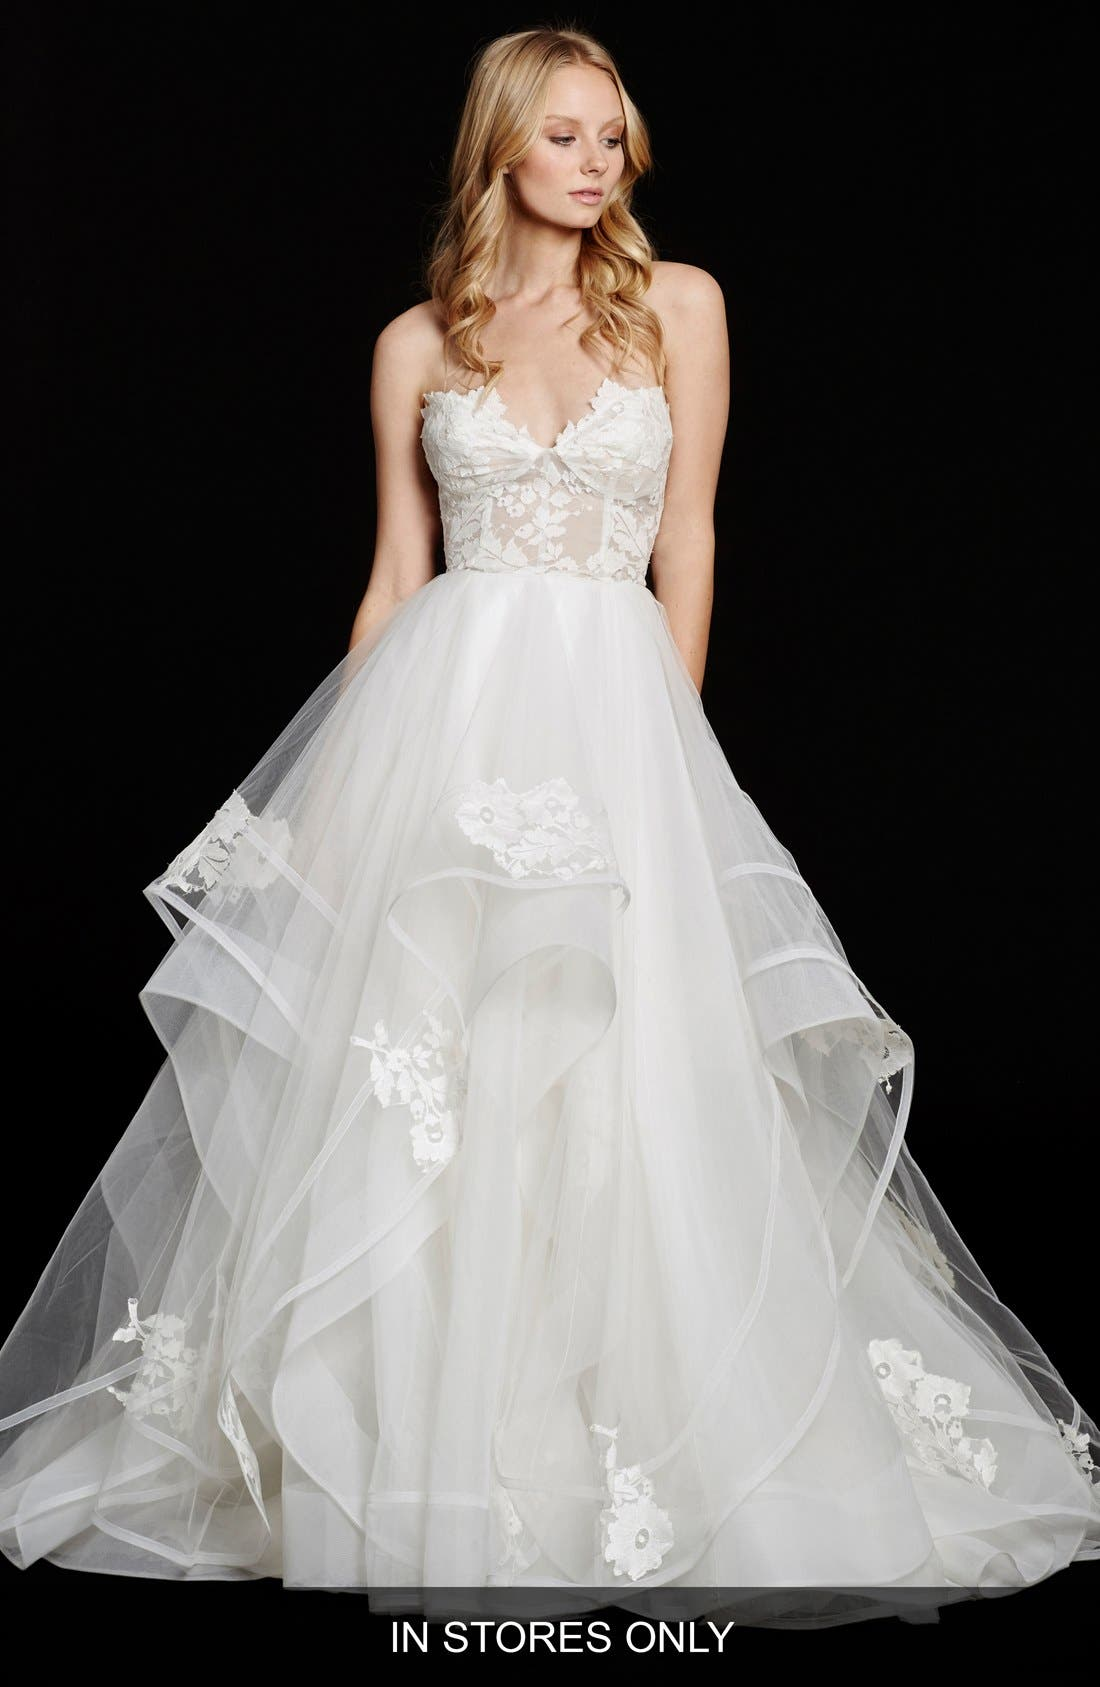 Chantelle Strapless Lace & Tulle Ballgown,                             Main thumbnail 1, color,                             IVORY